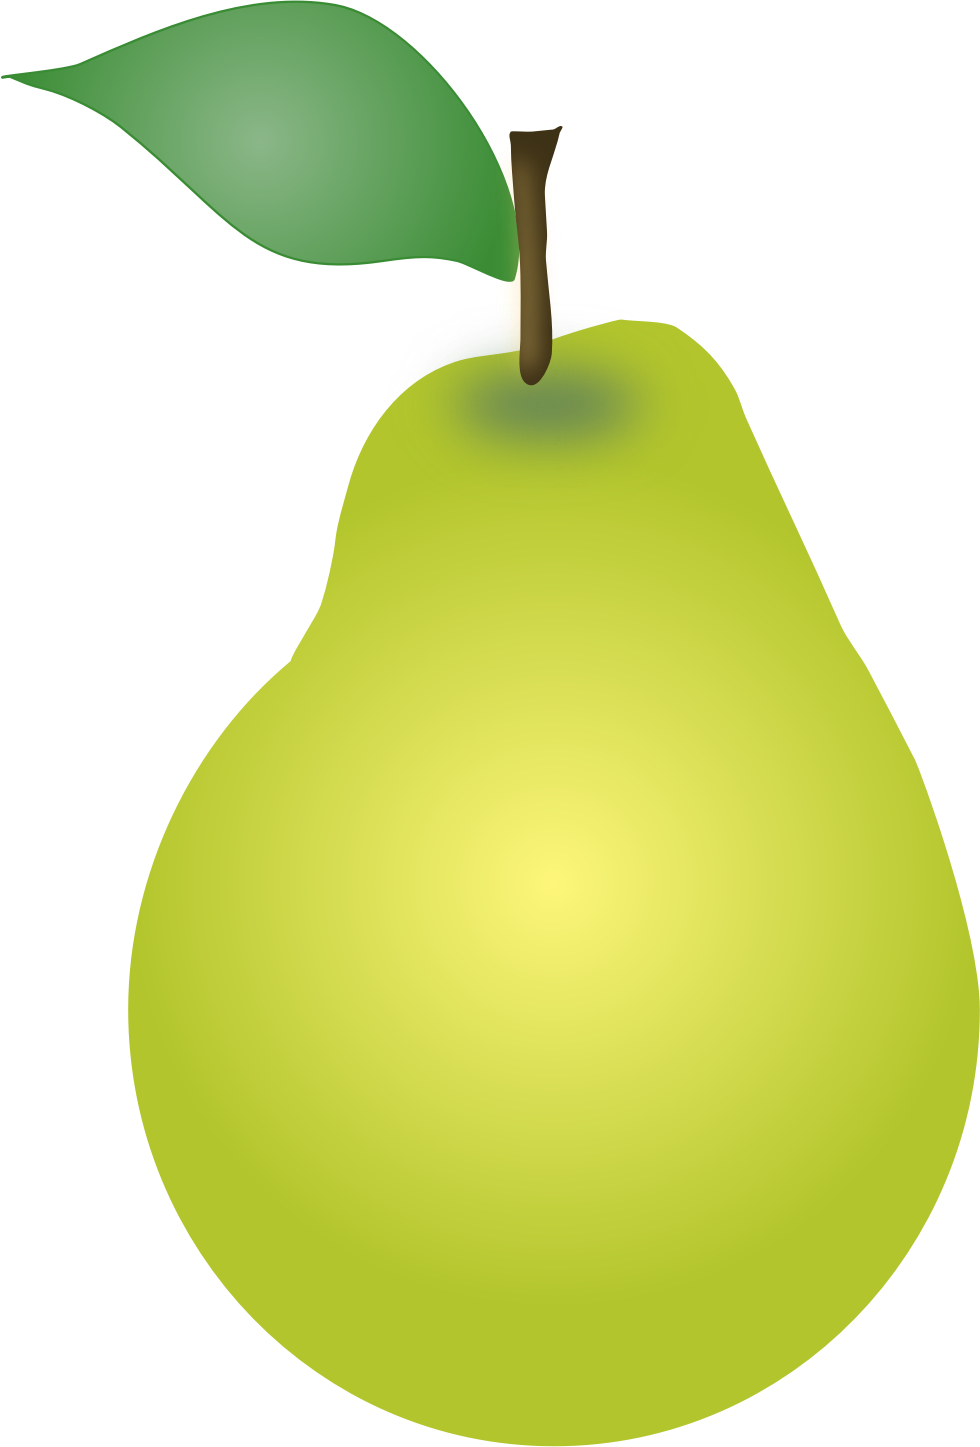 clipart pear svg pear clipart rh openclipart org prickly pear clipart pear clipart free